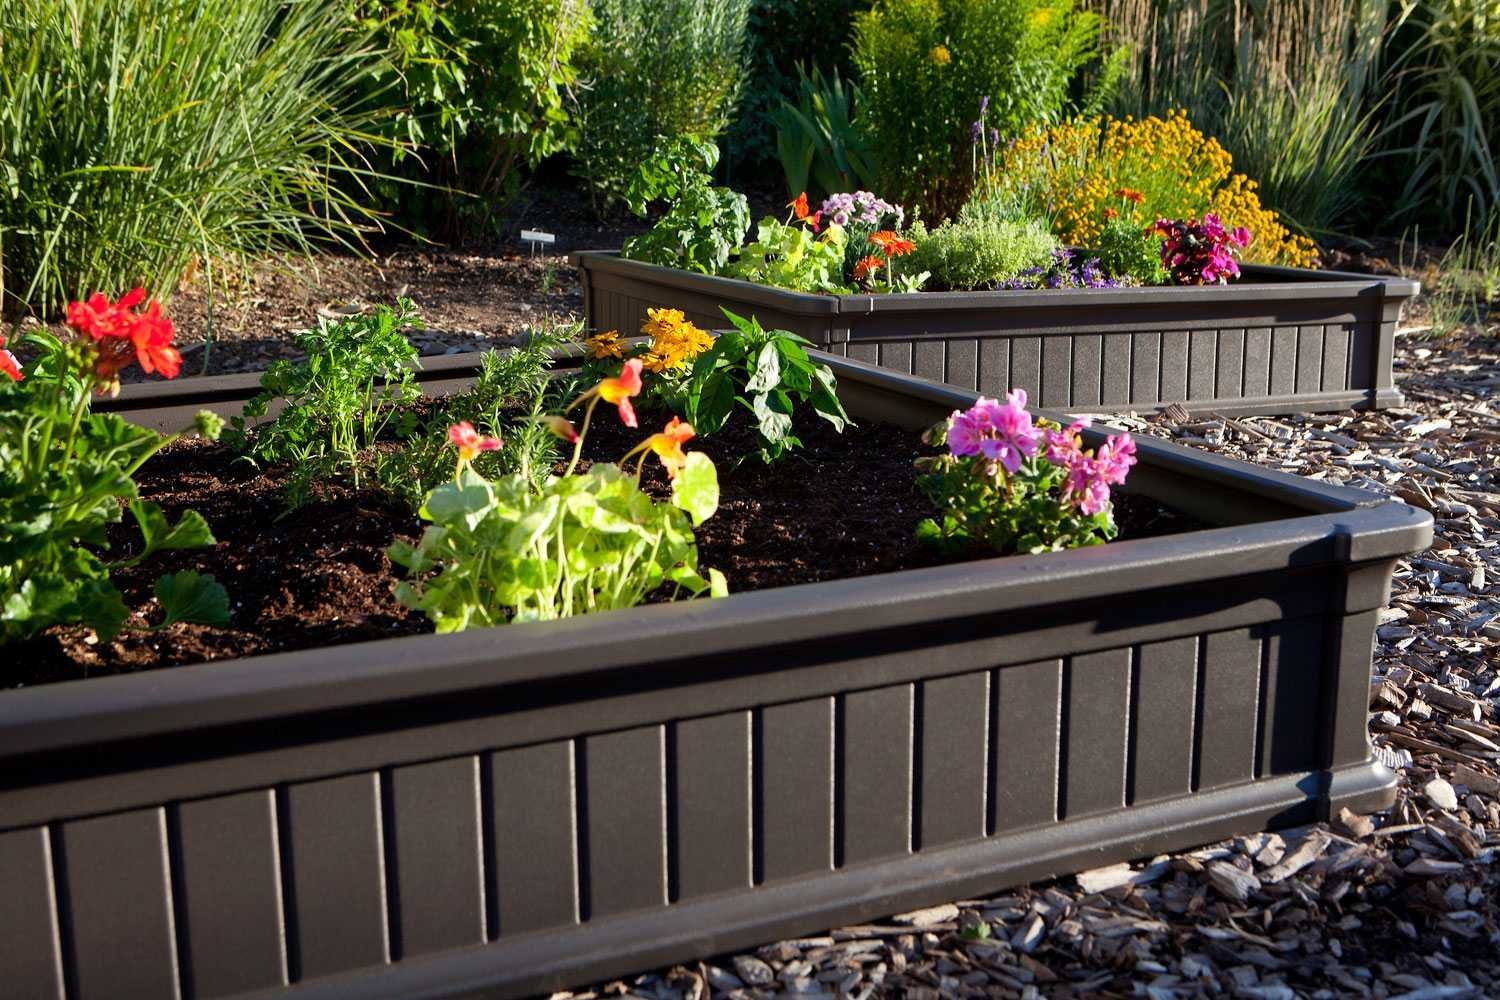 Amazoncom Lifetime 60053 Raised Garde Bed